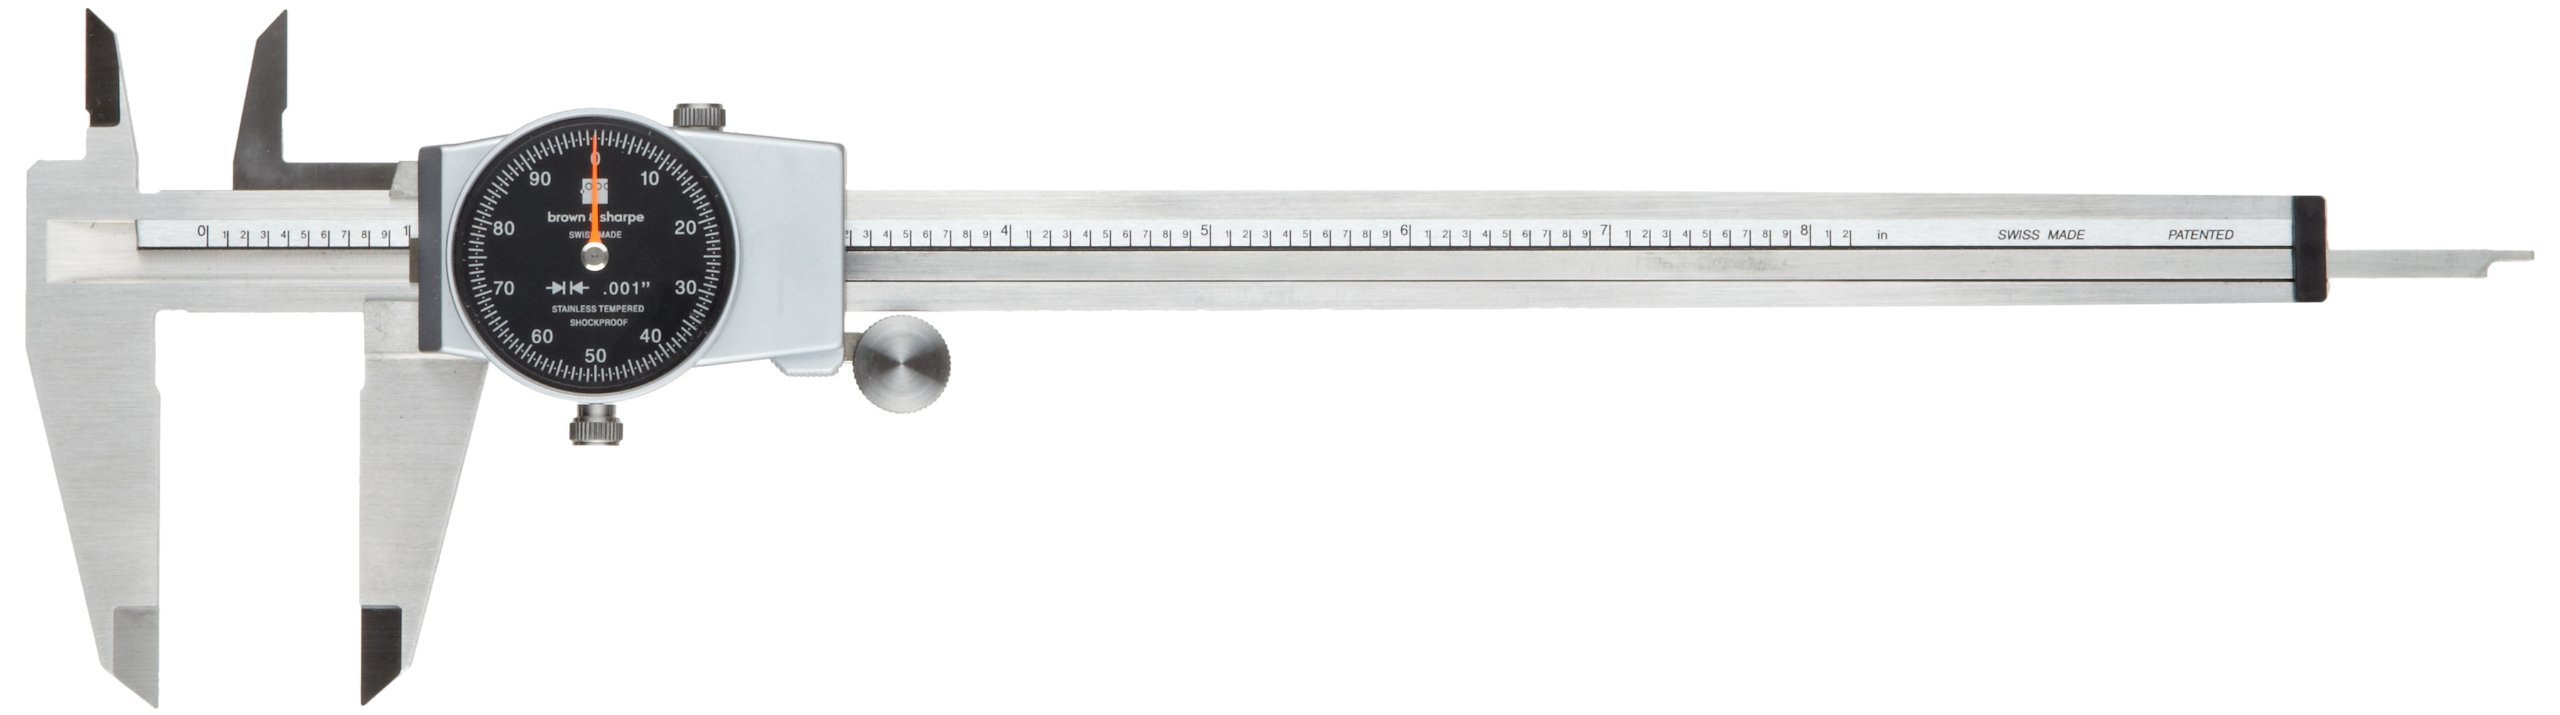 Brown & Sharpe 599-579-8-5-1 Dial Caliper, Stainless Steel, Black Face, 0-8'' Range, +/-0.001'' Accuracy, 0.001'' Resolution, Meets DIN 862 Specifications